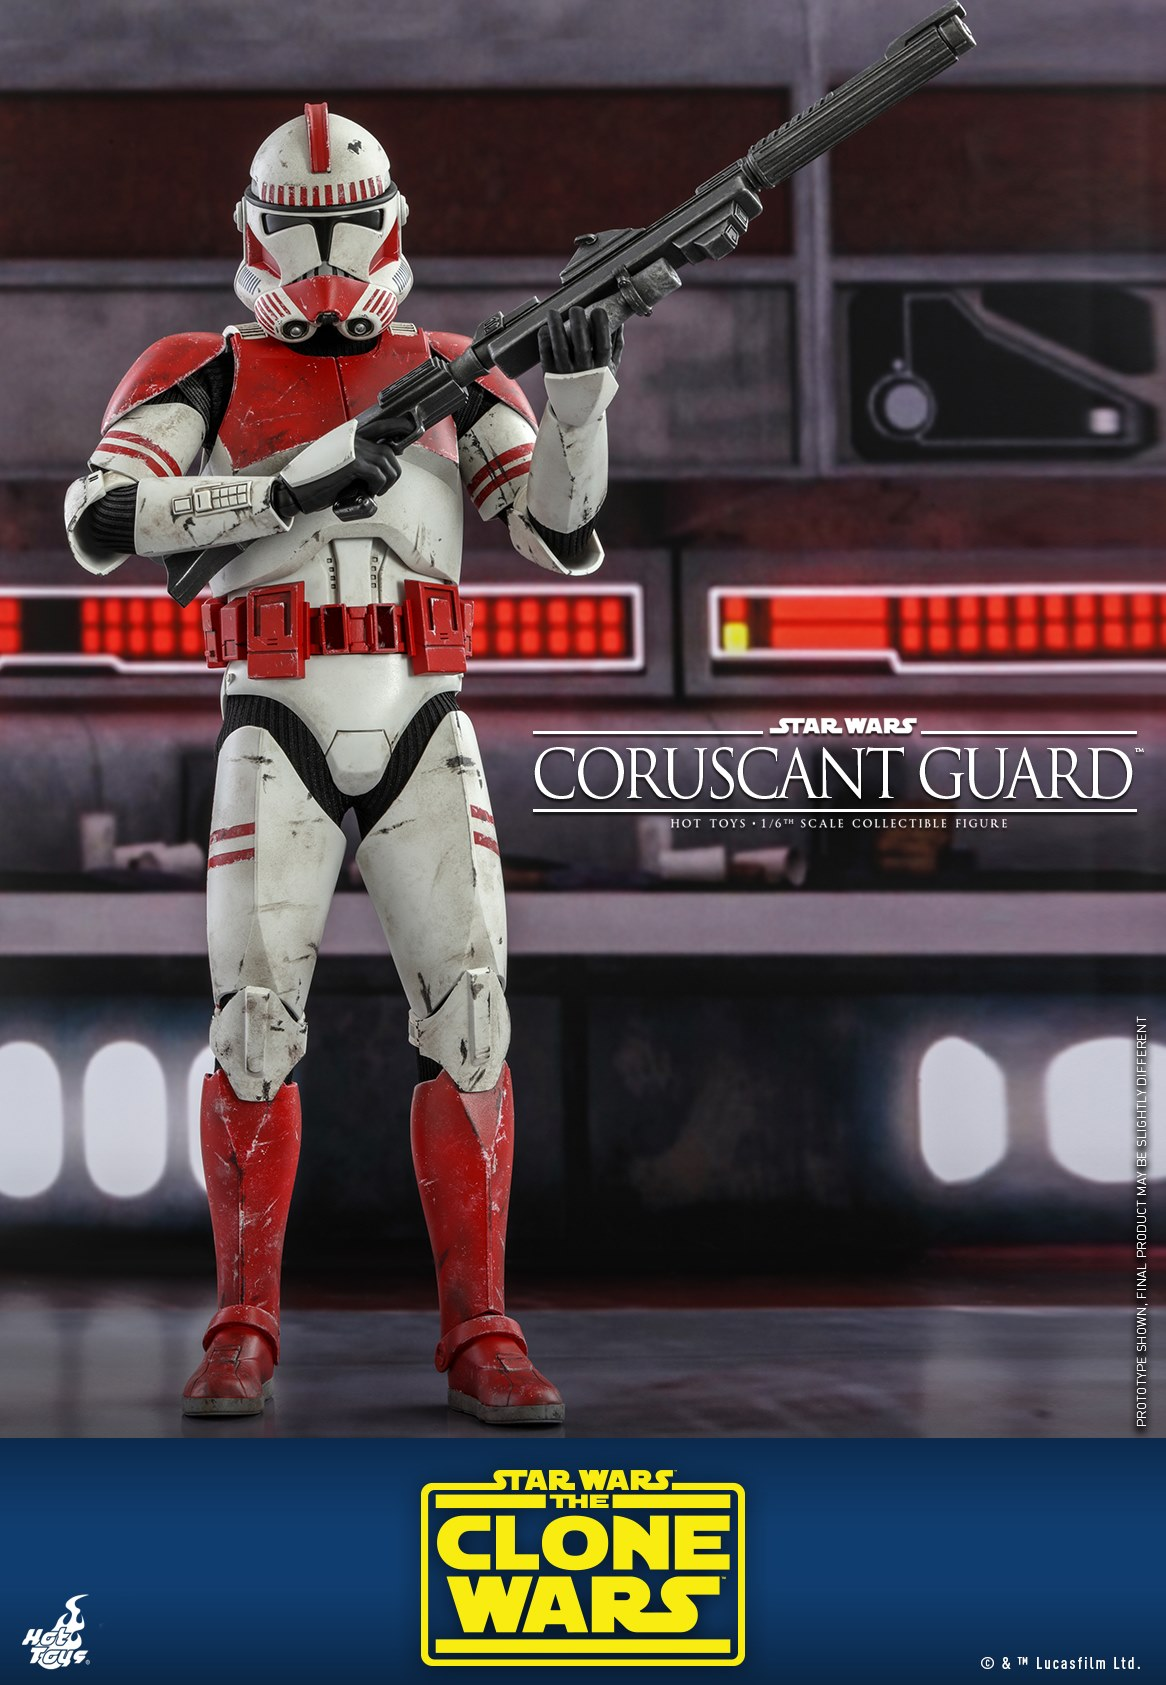 Pre-Order Hot Toys Star Wars Coruscant Guard Sixth Scale Figure